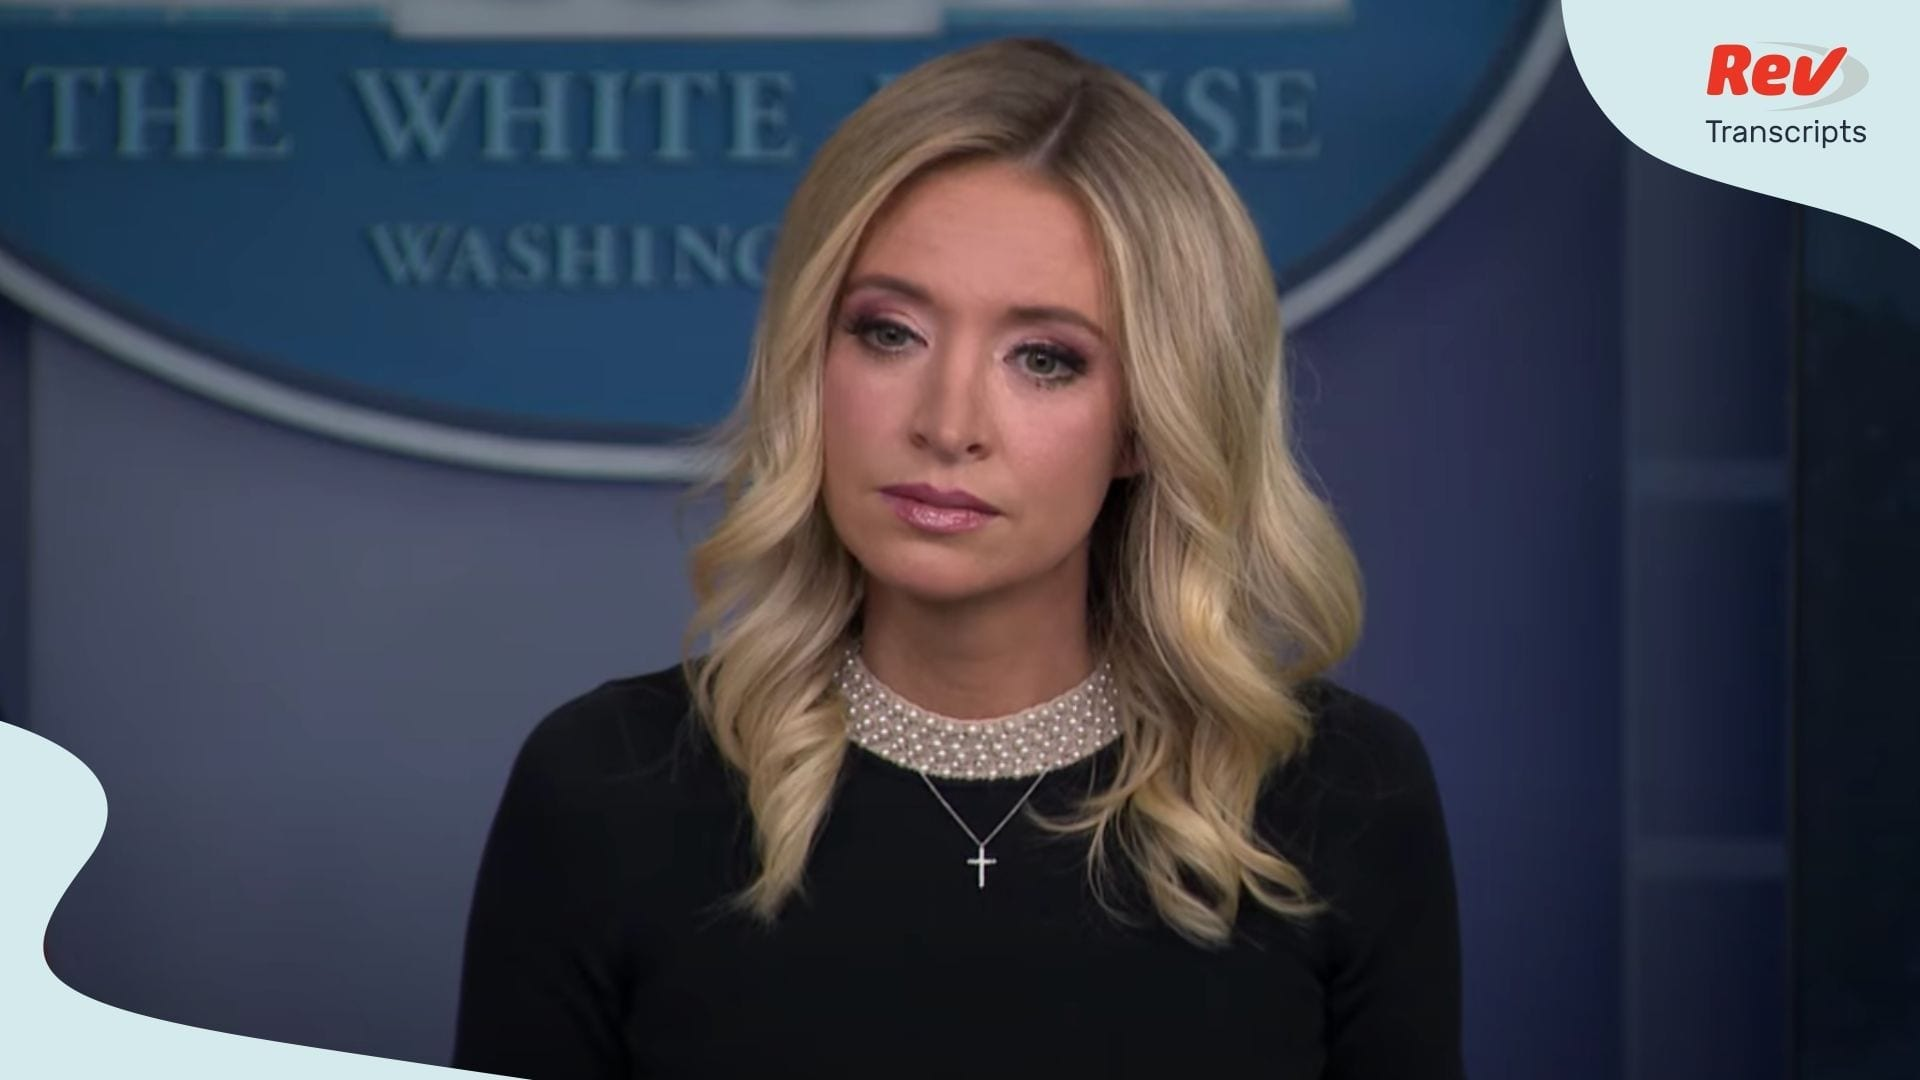 White House Kayleigh Mcenany Press Conference Transcript May 15 Rev